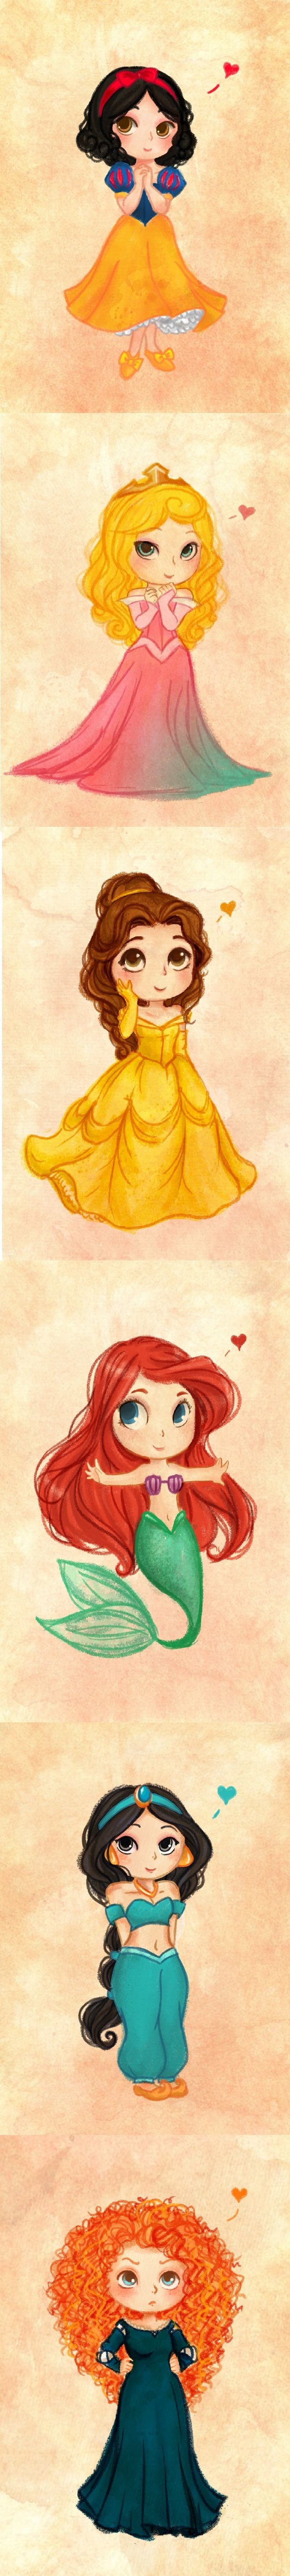 lovely <3 Princesses by Natalia Fanchini